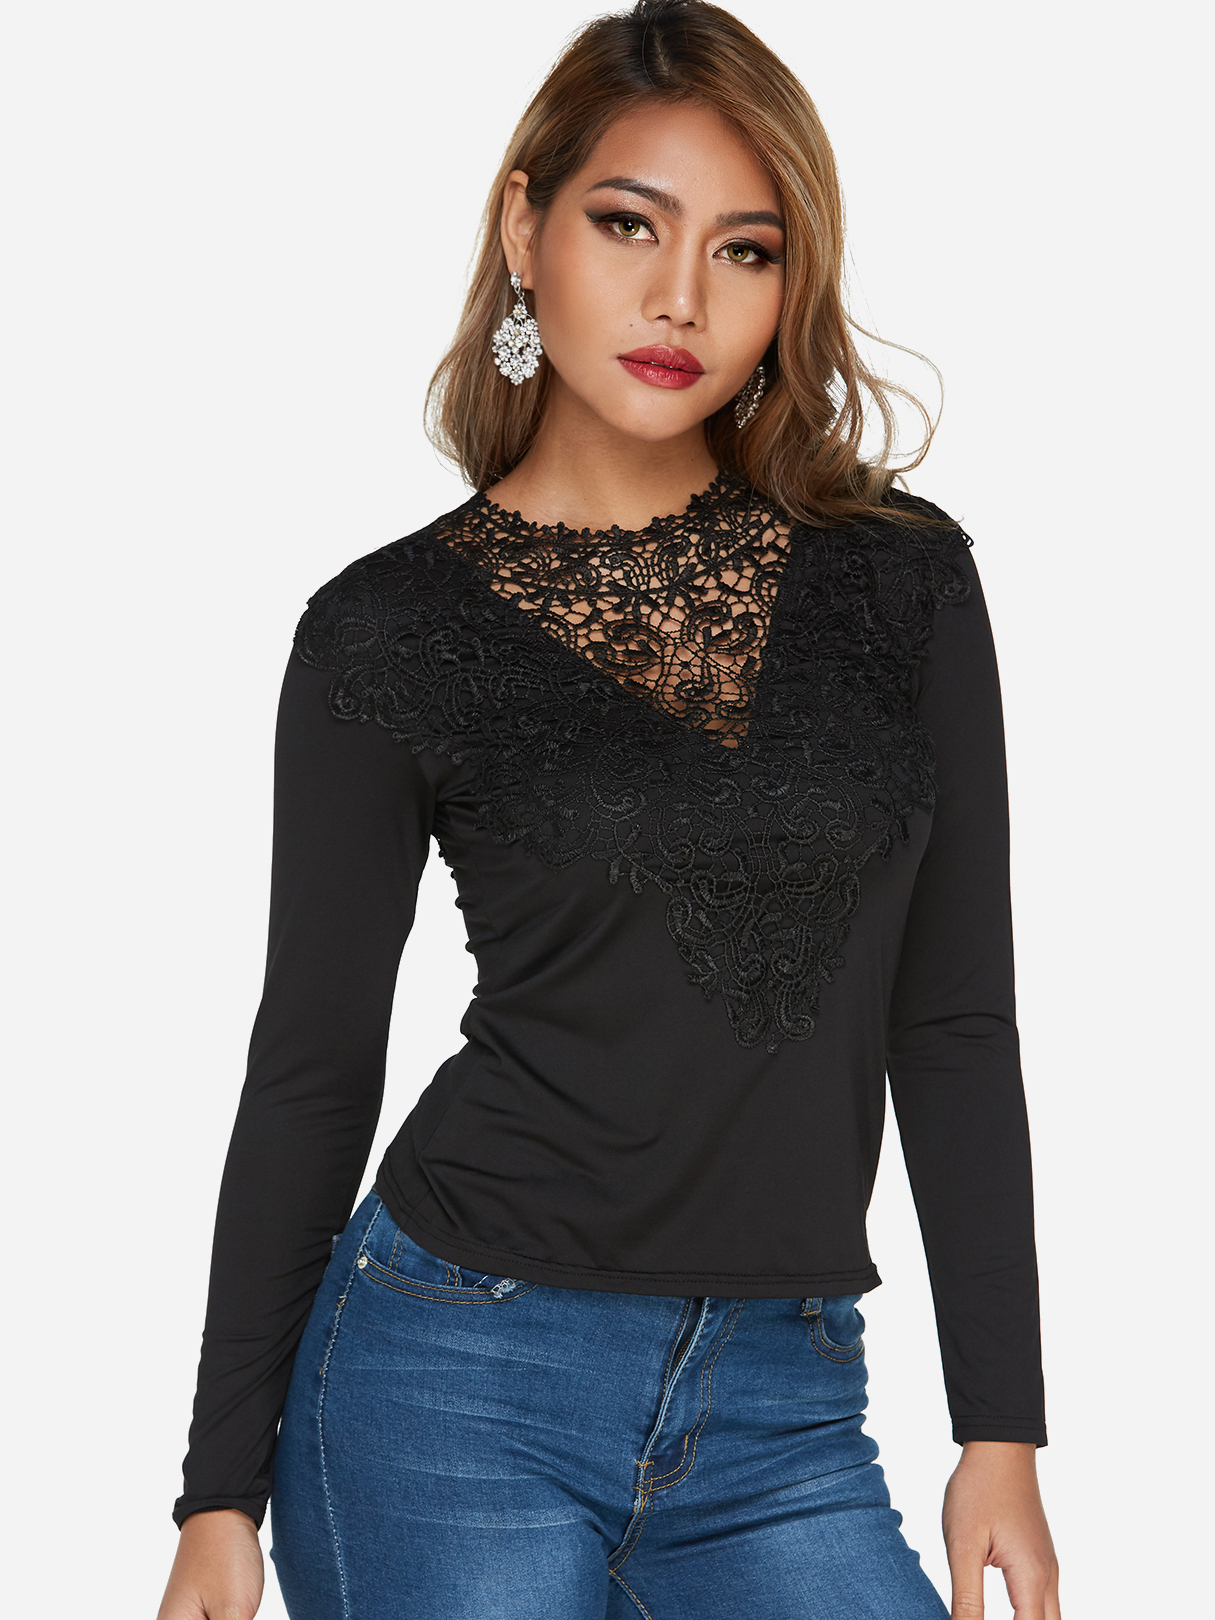 Black Lace-up Design Wide V-neck Long Sleeves Top - US 12.75 -YOINS 9e79c254c